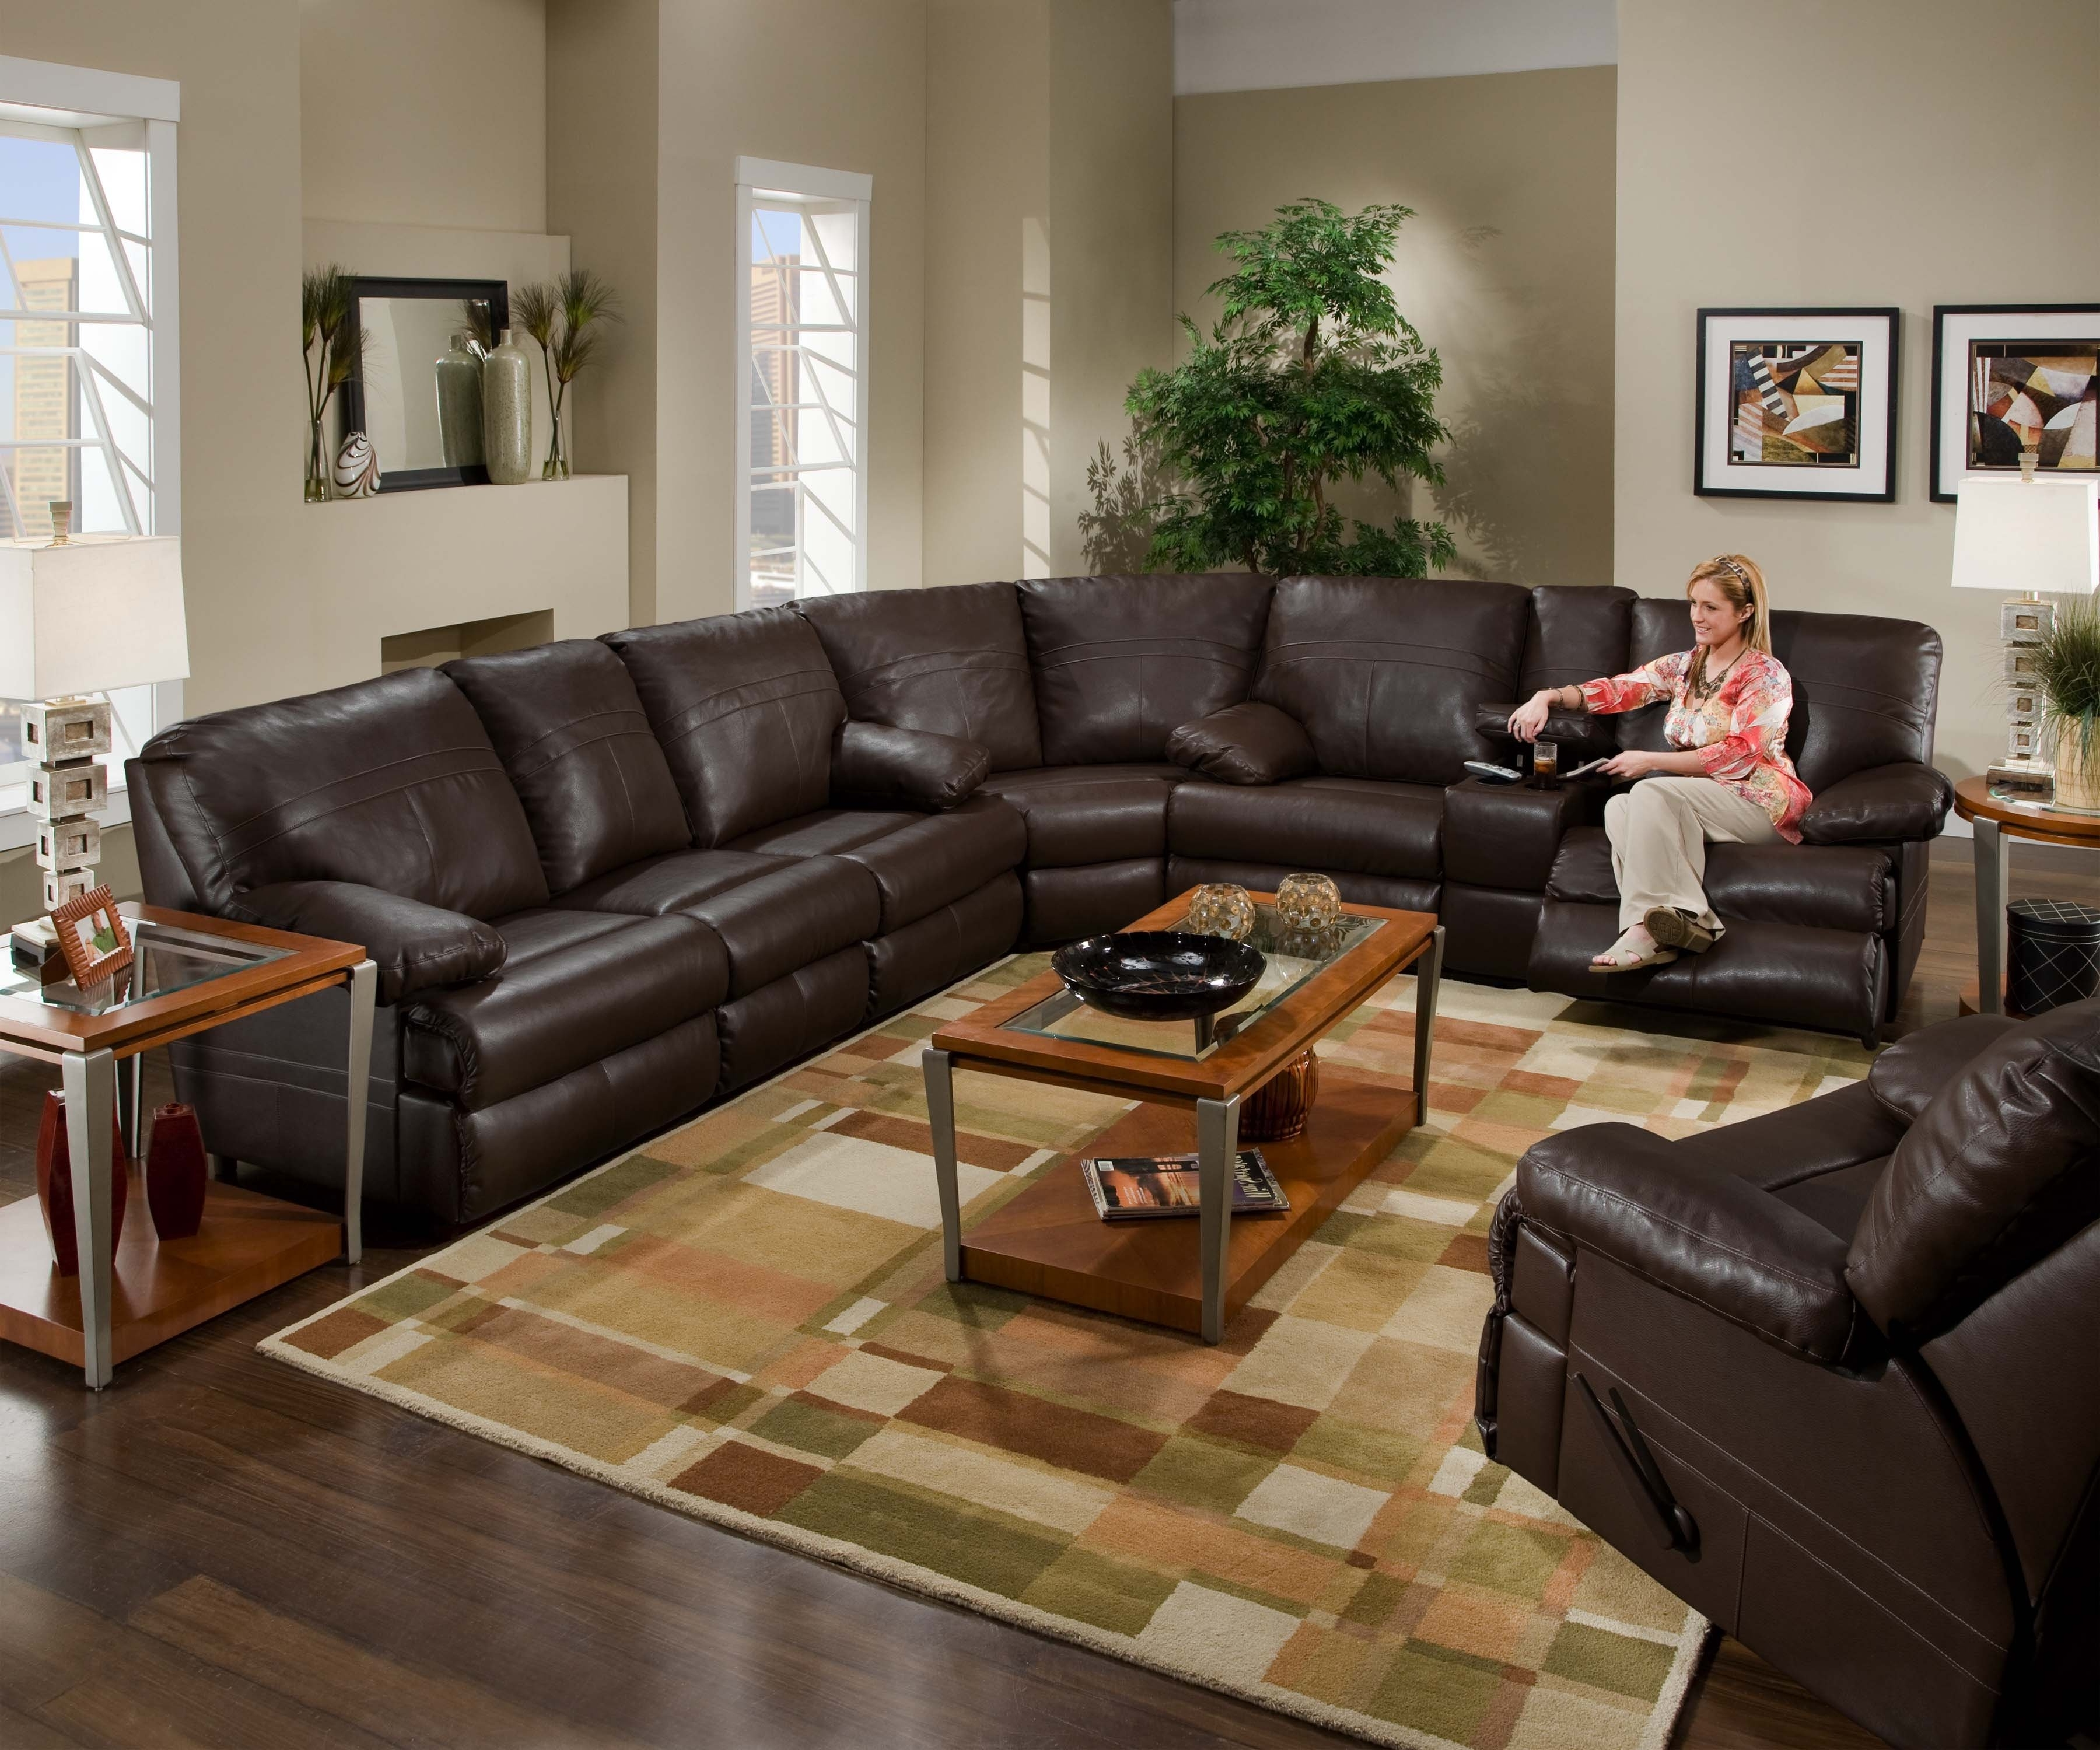 Amazing Black Sectional Sofa With Recliners 48 On Sleeper Sofa Inside Favorite Sectional Sofas In Charlotte Nc (View 6 of 20)